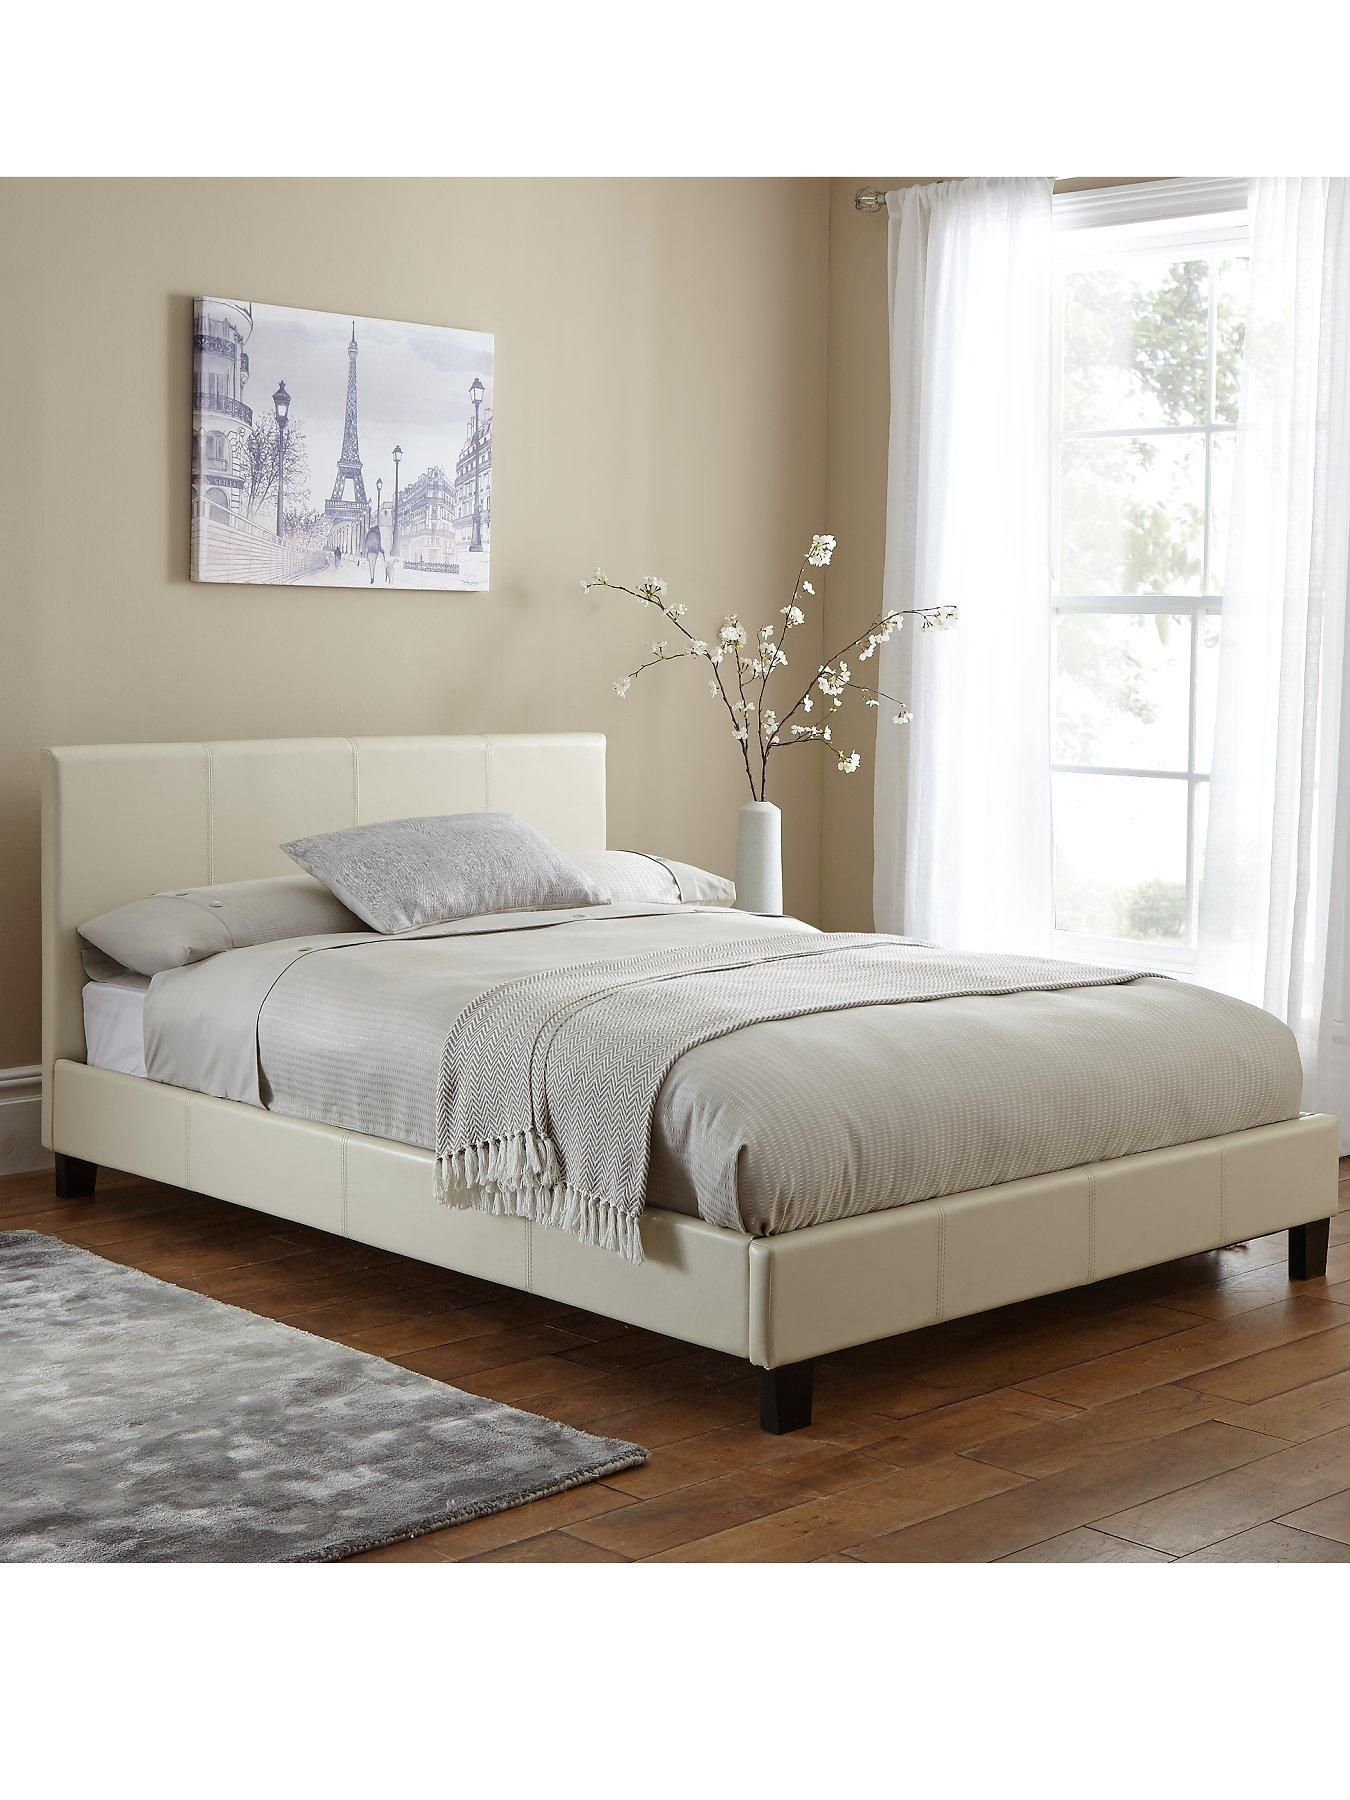 Leather Bed Frame Esme Faux Leather Bed Frame And Mattress Options Buy And Save